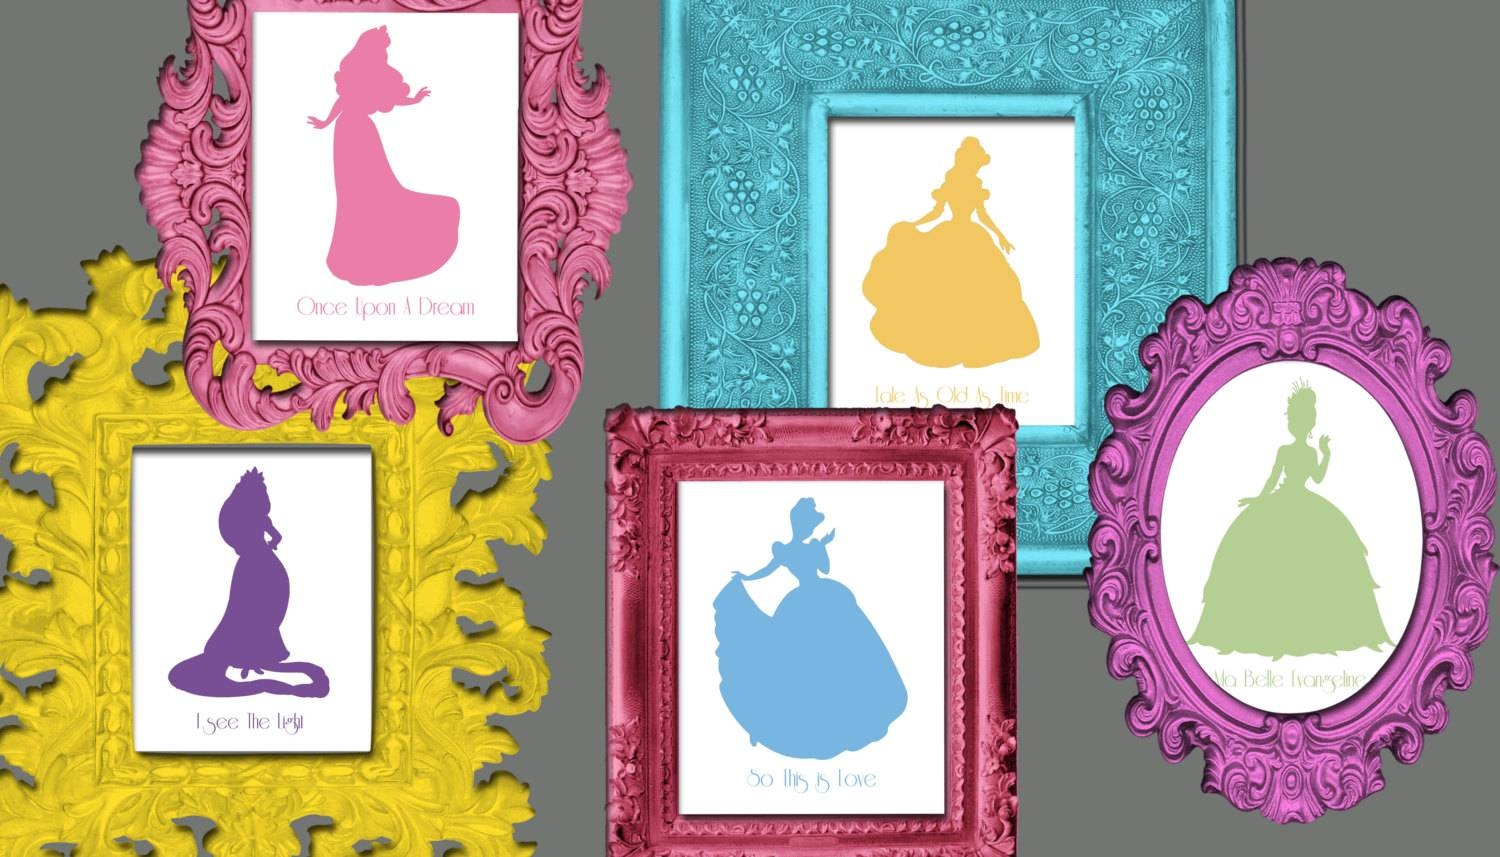 Disney Princess Silhouette Wall Art 12 8X10 Prints With Song Throughout 2017 Disney Princess Wall Art (View 10 of 20)